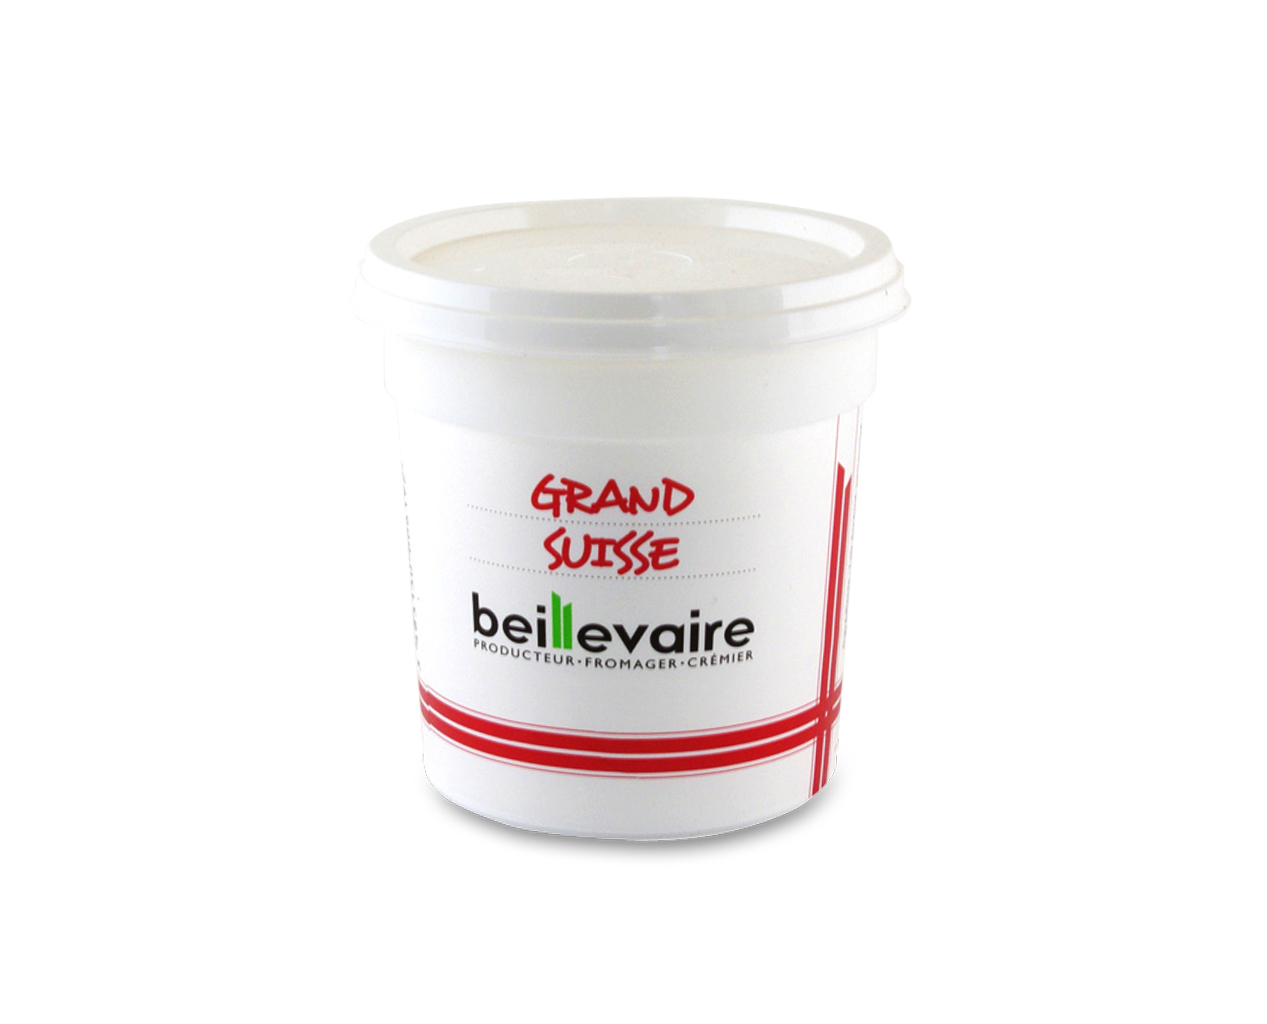 Grand Suisse nature, Beillevaire (100 g)